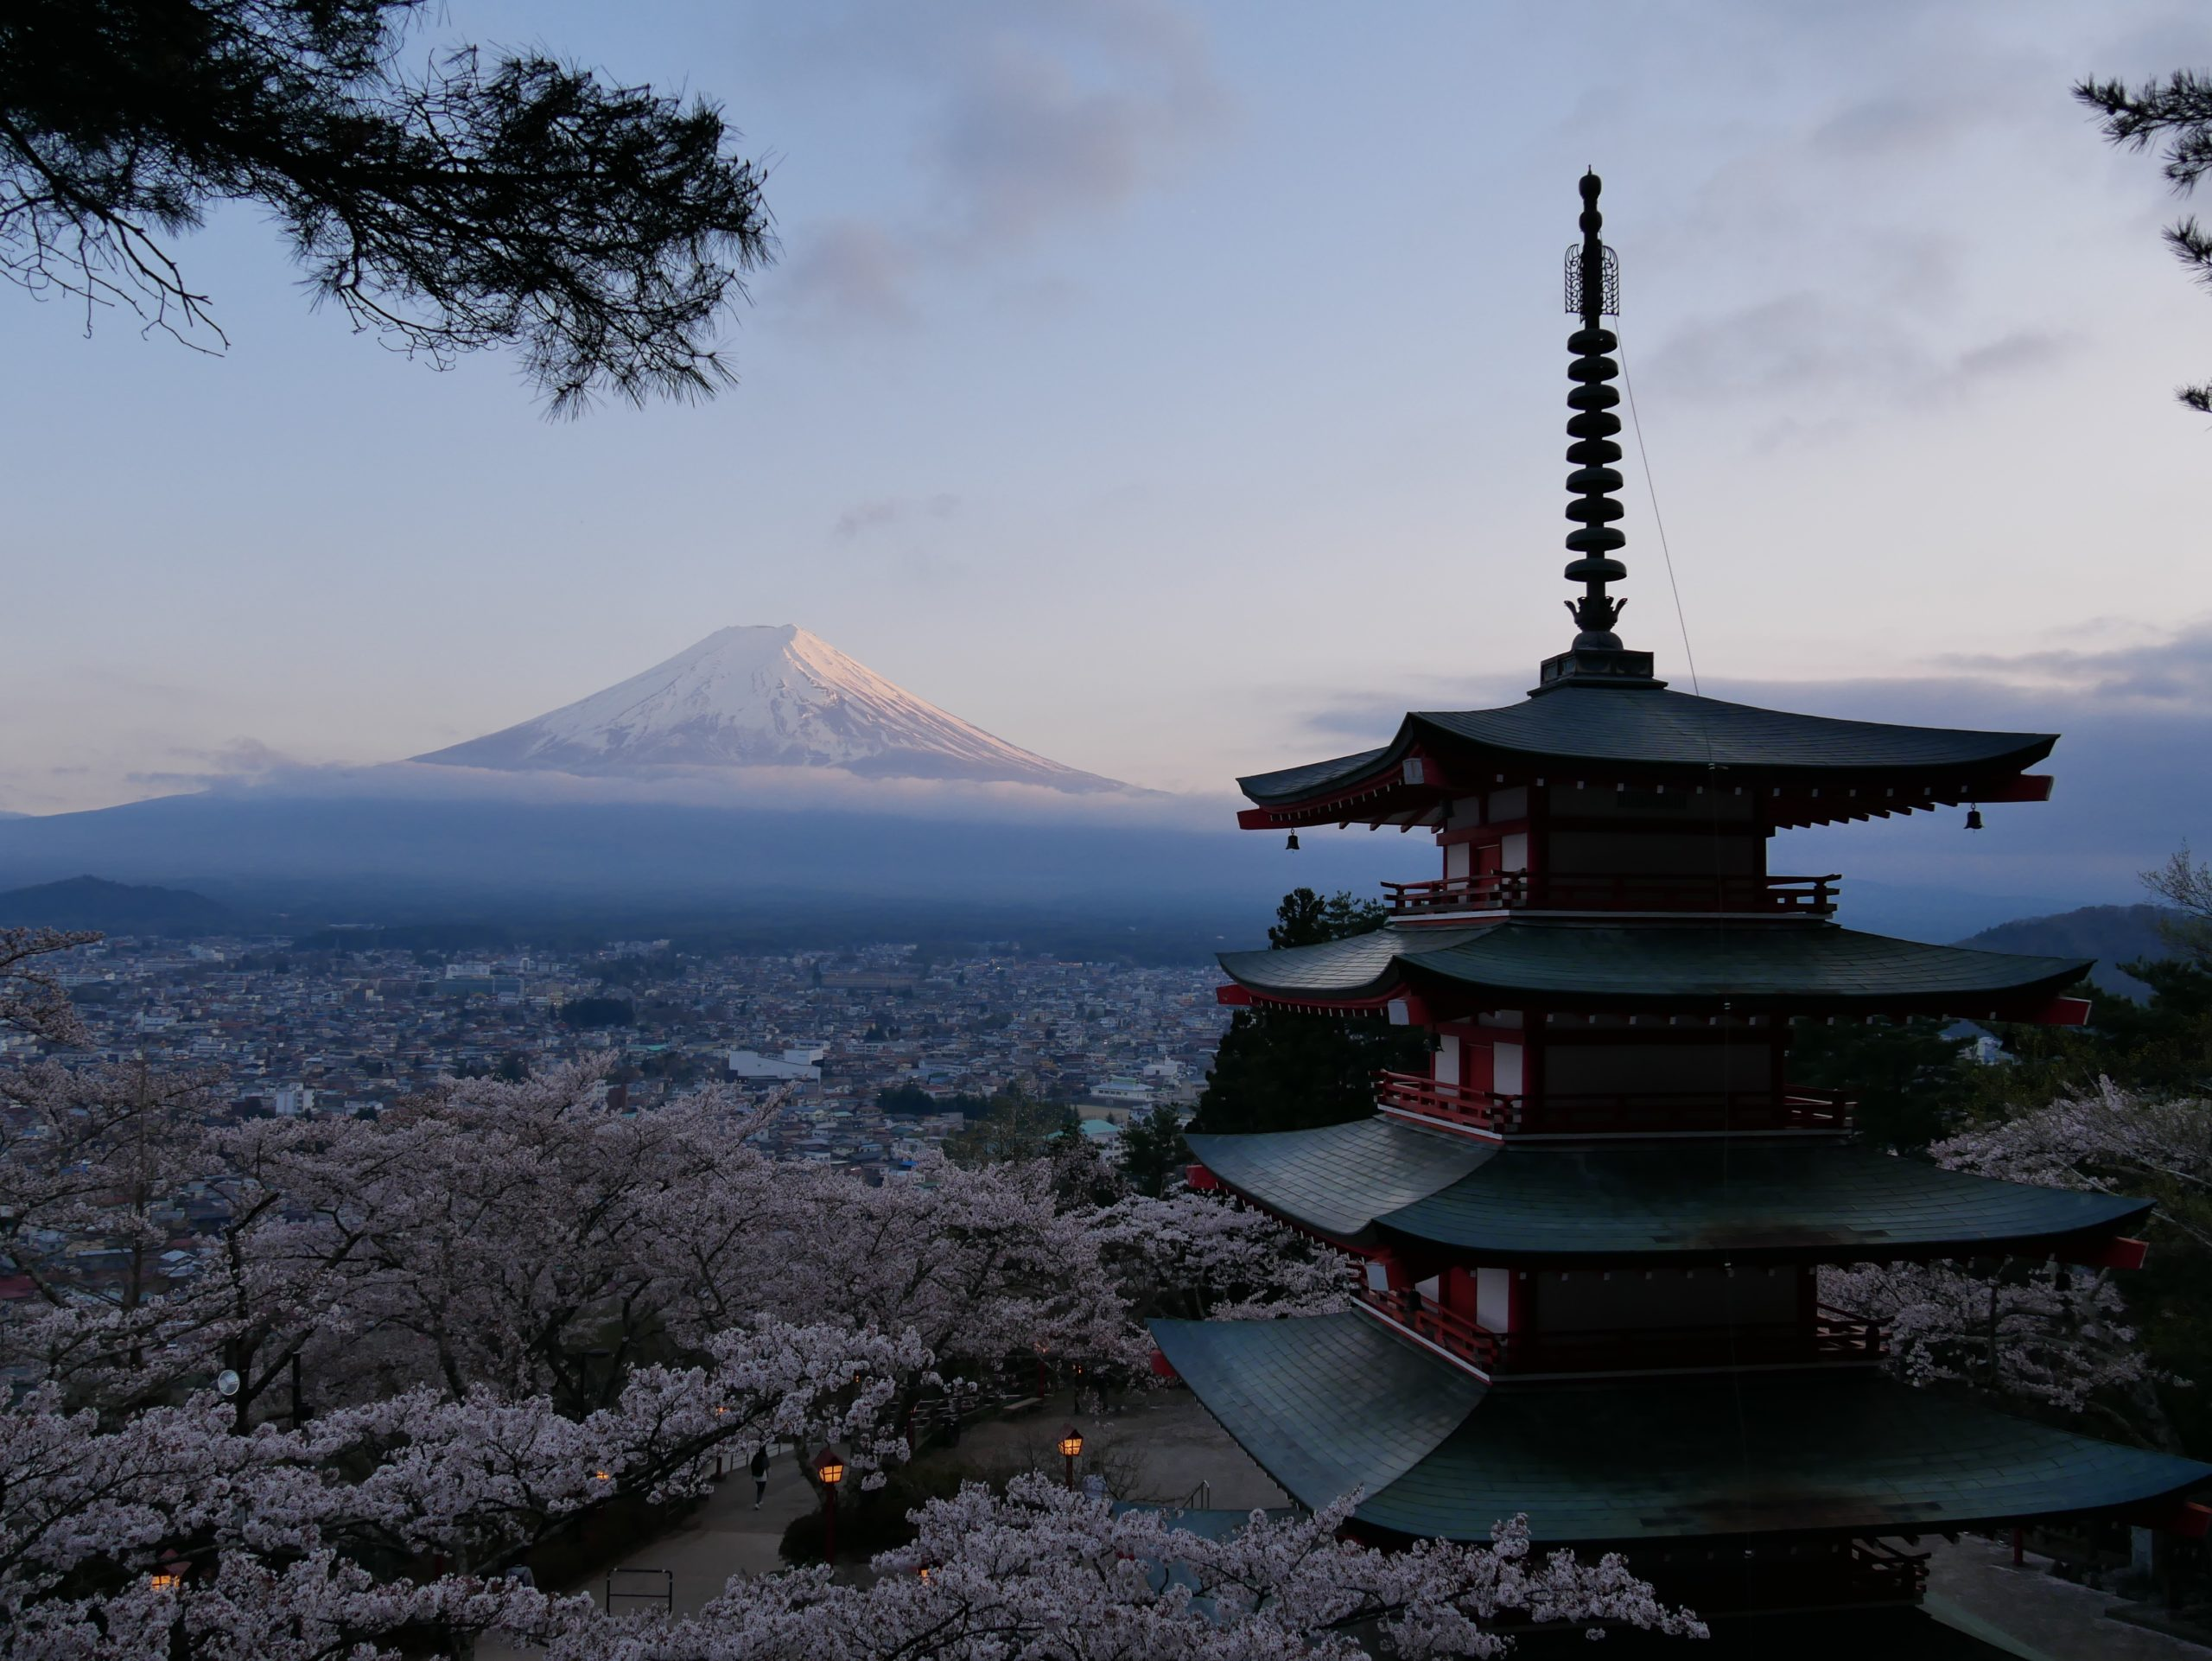 Japon: l'ascension du Mont Fuji